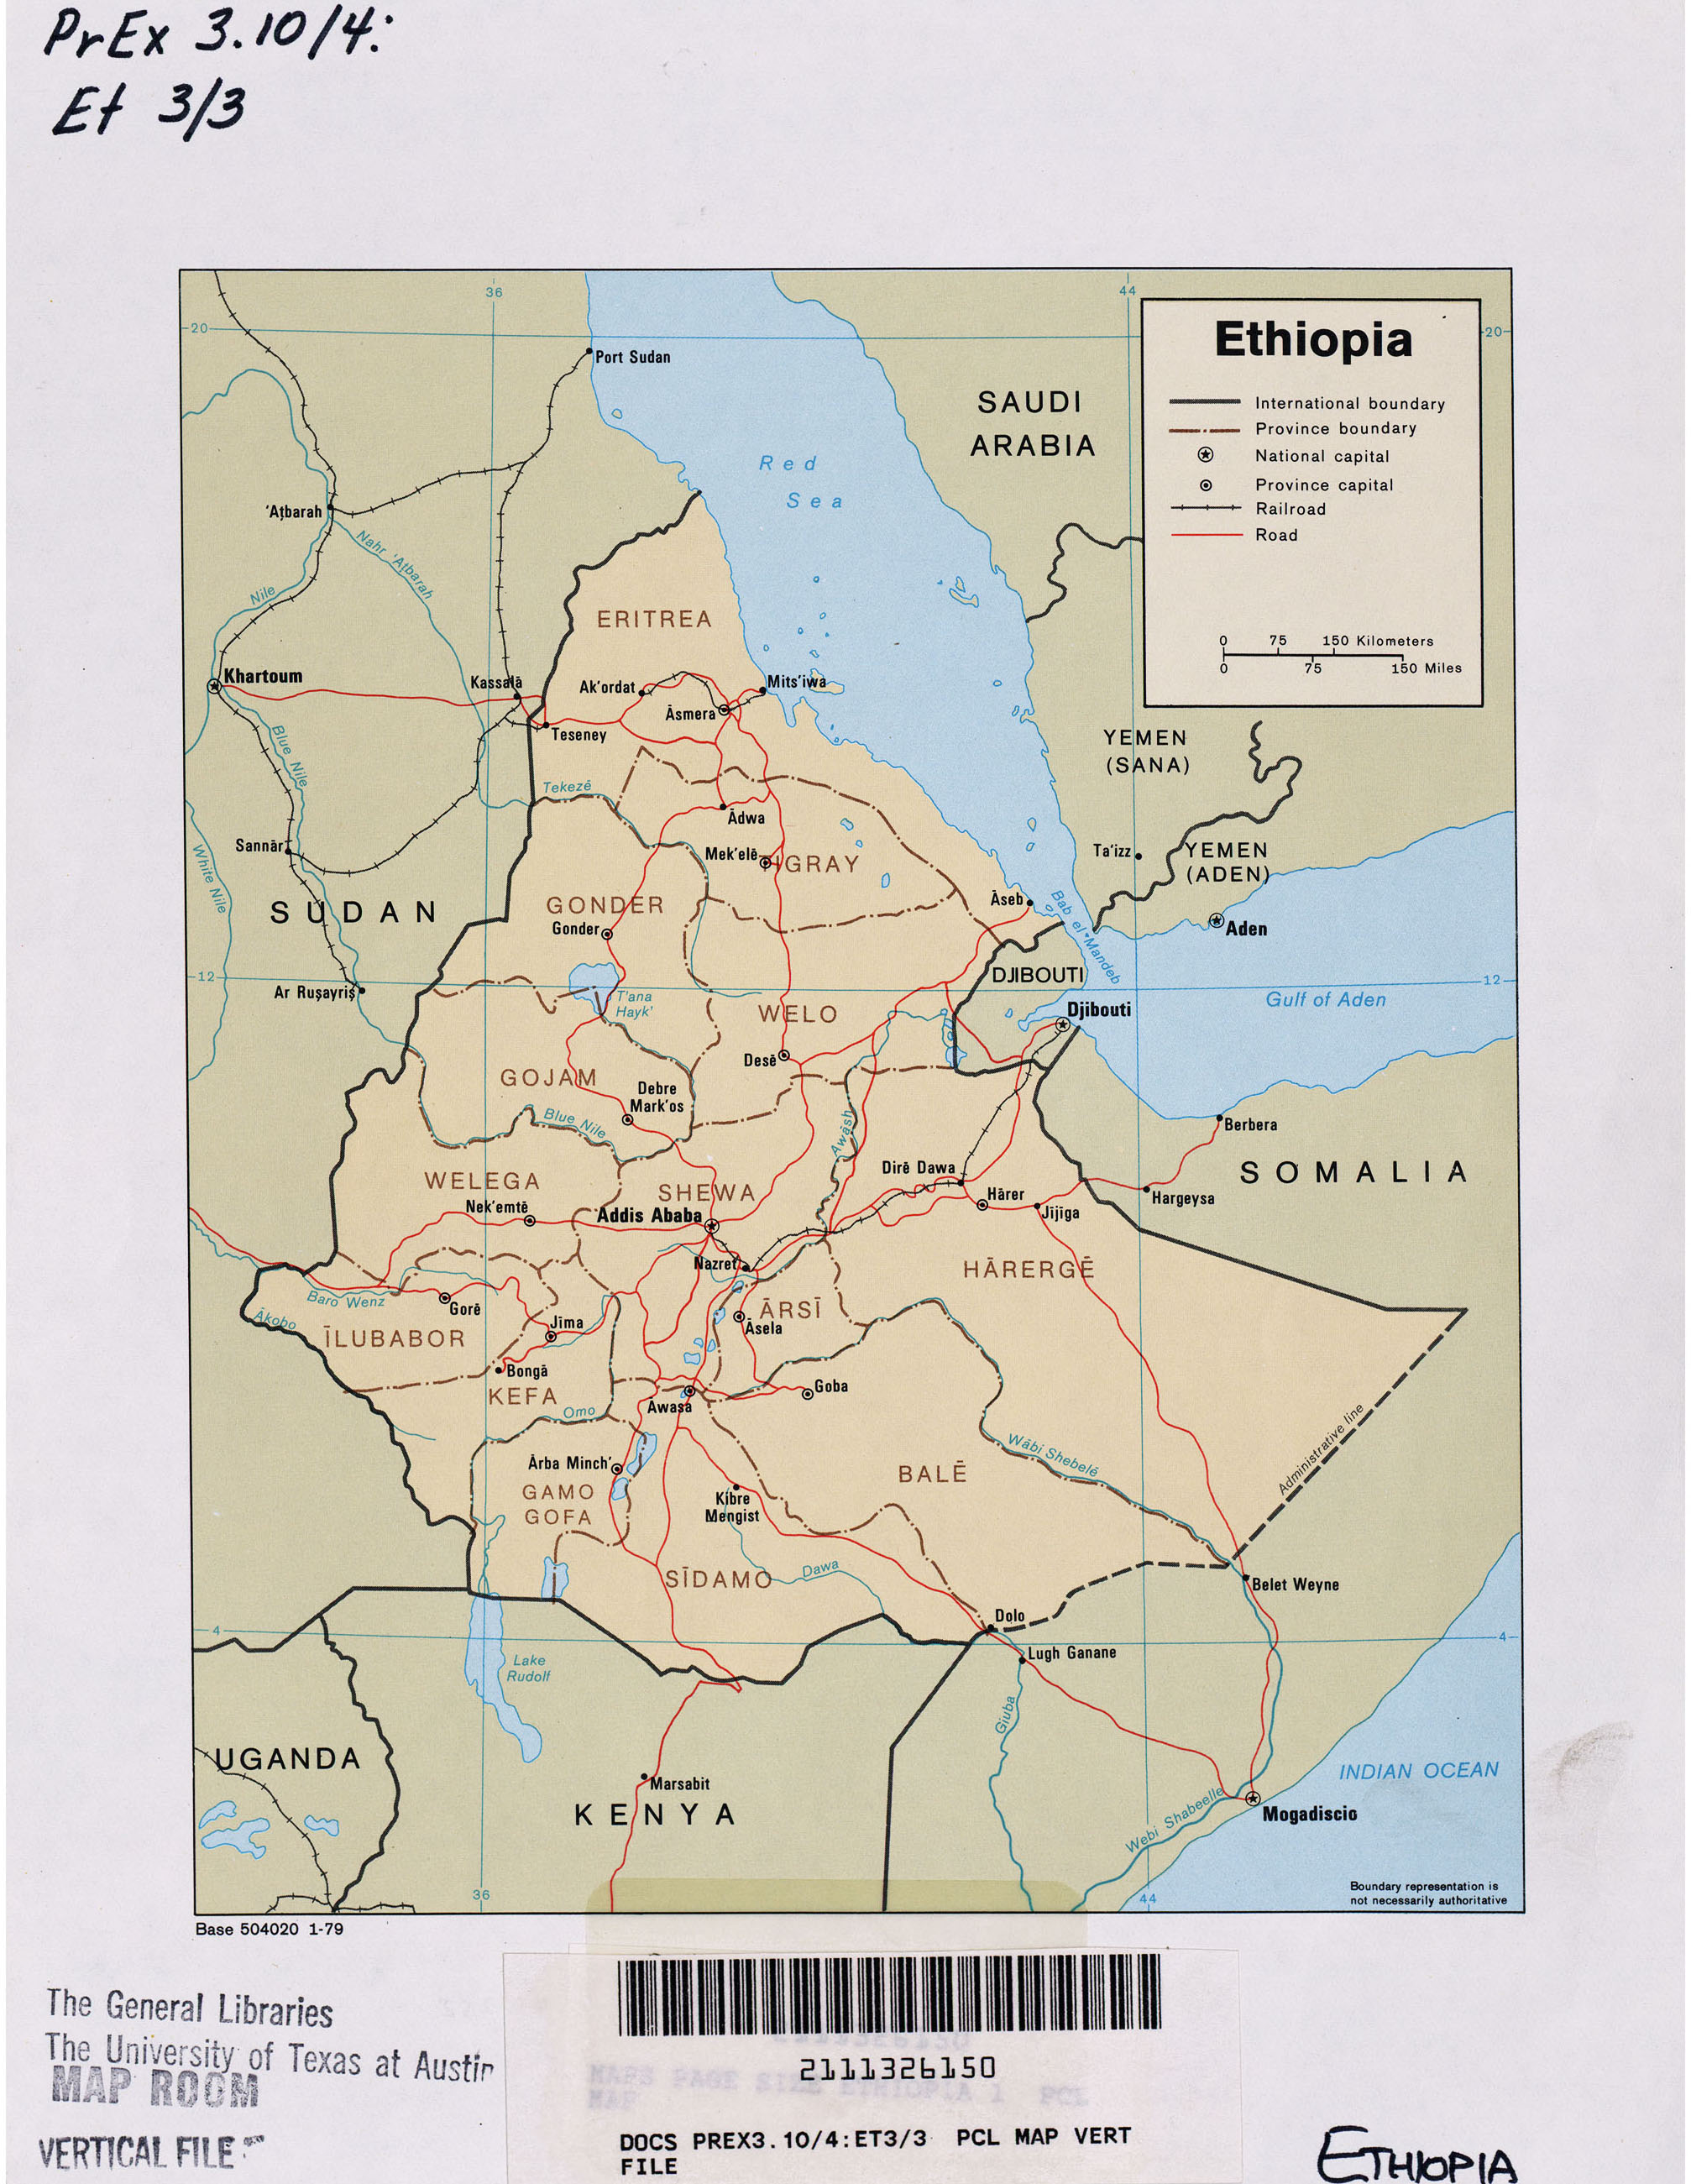 Ethiopia Maps - Perry-Castañeda Map Collection - UT Liry ... on galapagos islands map, nigeria map, mali map, italy map, el salvador map, france map, african countries map, israel map, oromia map, ghana map, egypt map, algeria map, india map, mozambique map, angola map, cameroon map, middle east map, zambia map, togo map, korea map, sudan map, liberia map, kenya map, niger map, eritrea map, latvia map, senegal map, libya map, rwanda map, namibia map, mediterranean sea map, russia map, madagascar map, morocco map, germany map, africa map, malawi map,